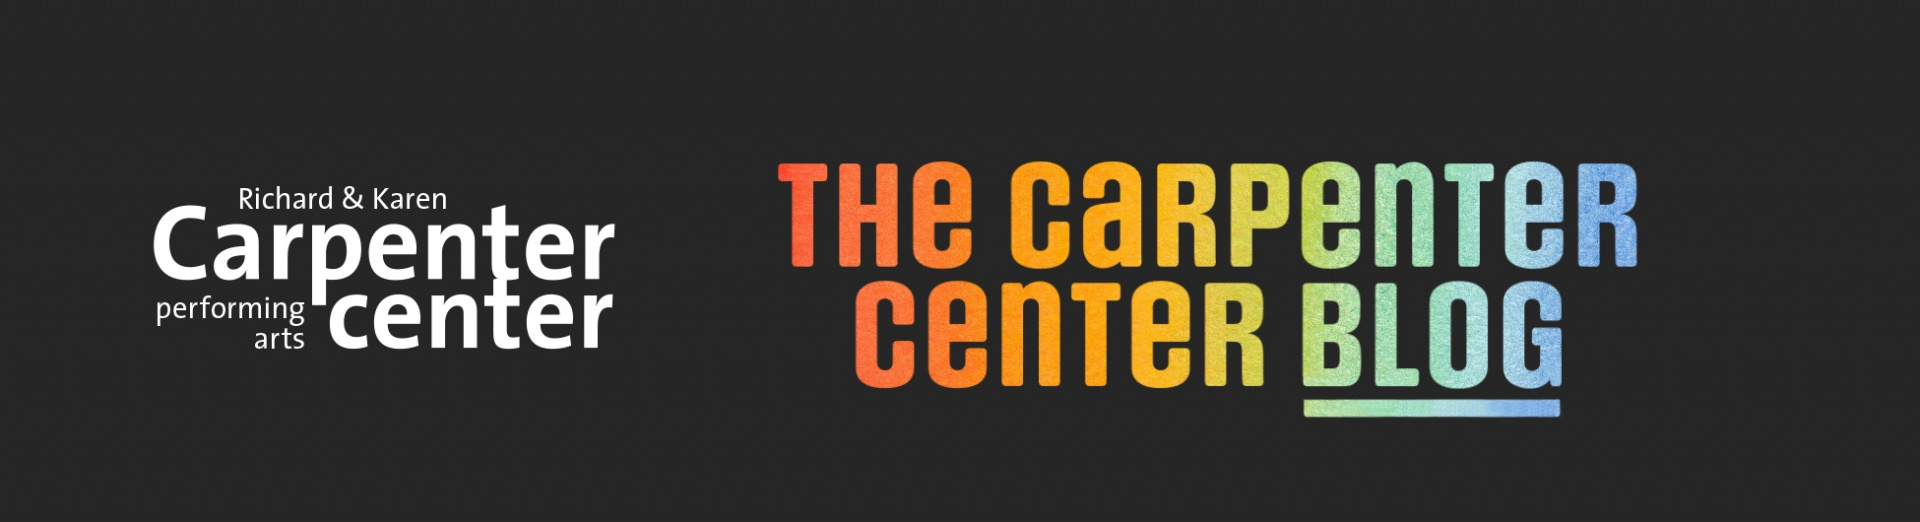 The Carpenter Center Blog